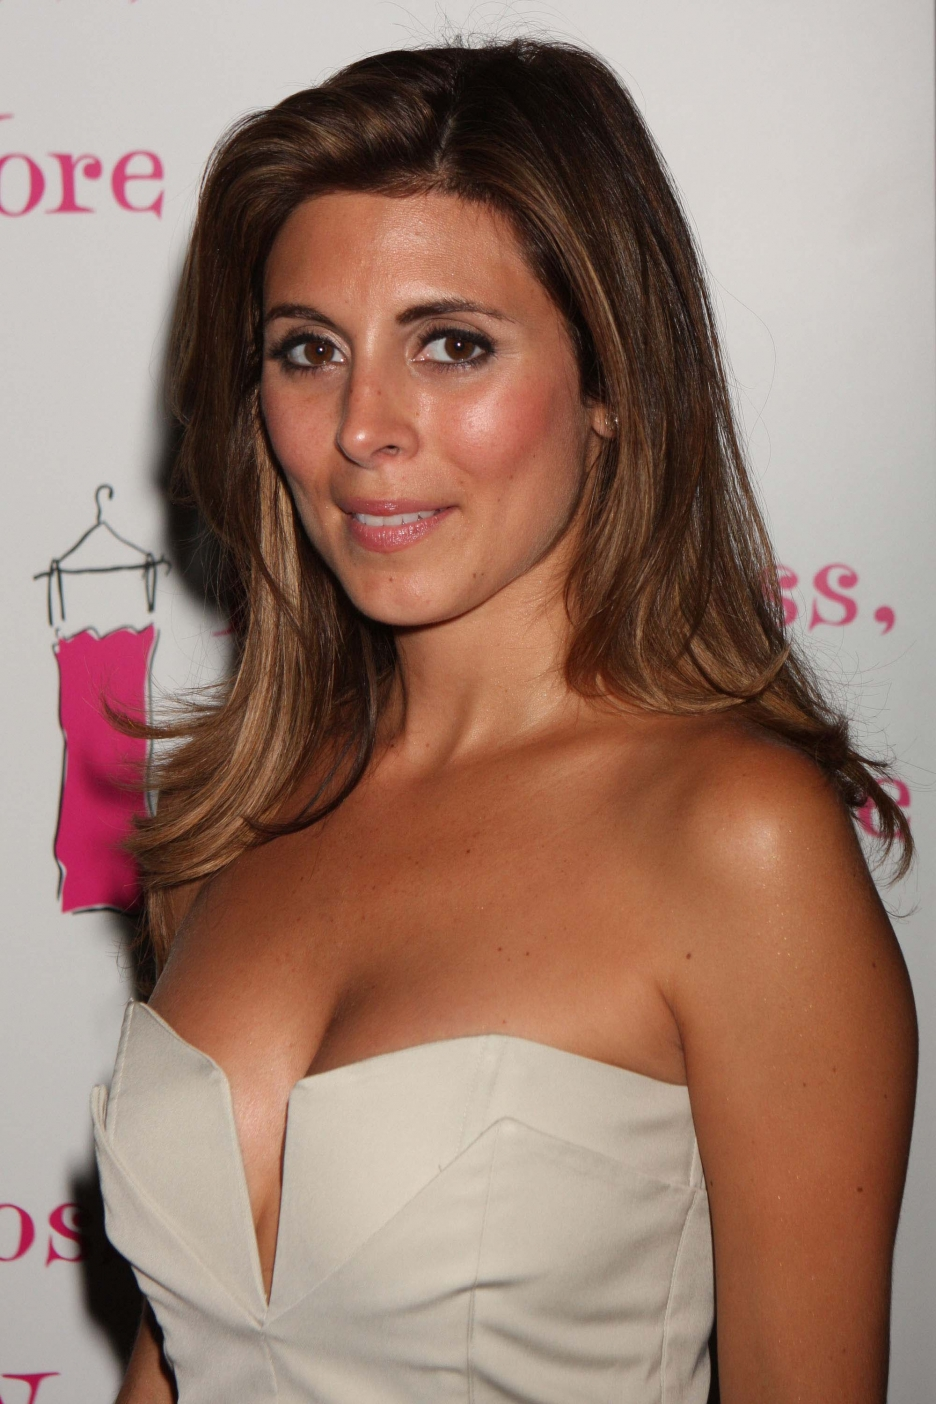 Jamie-Lynn Sigler | Game Shows Wiki | FANDOM powered by Wikia